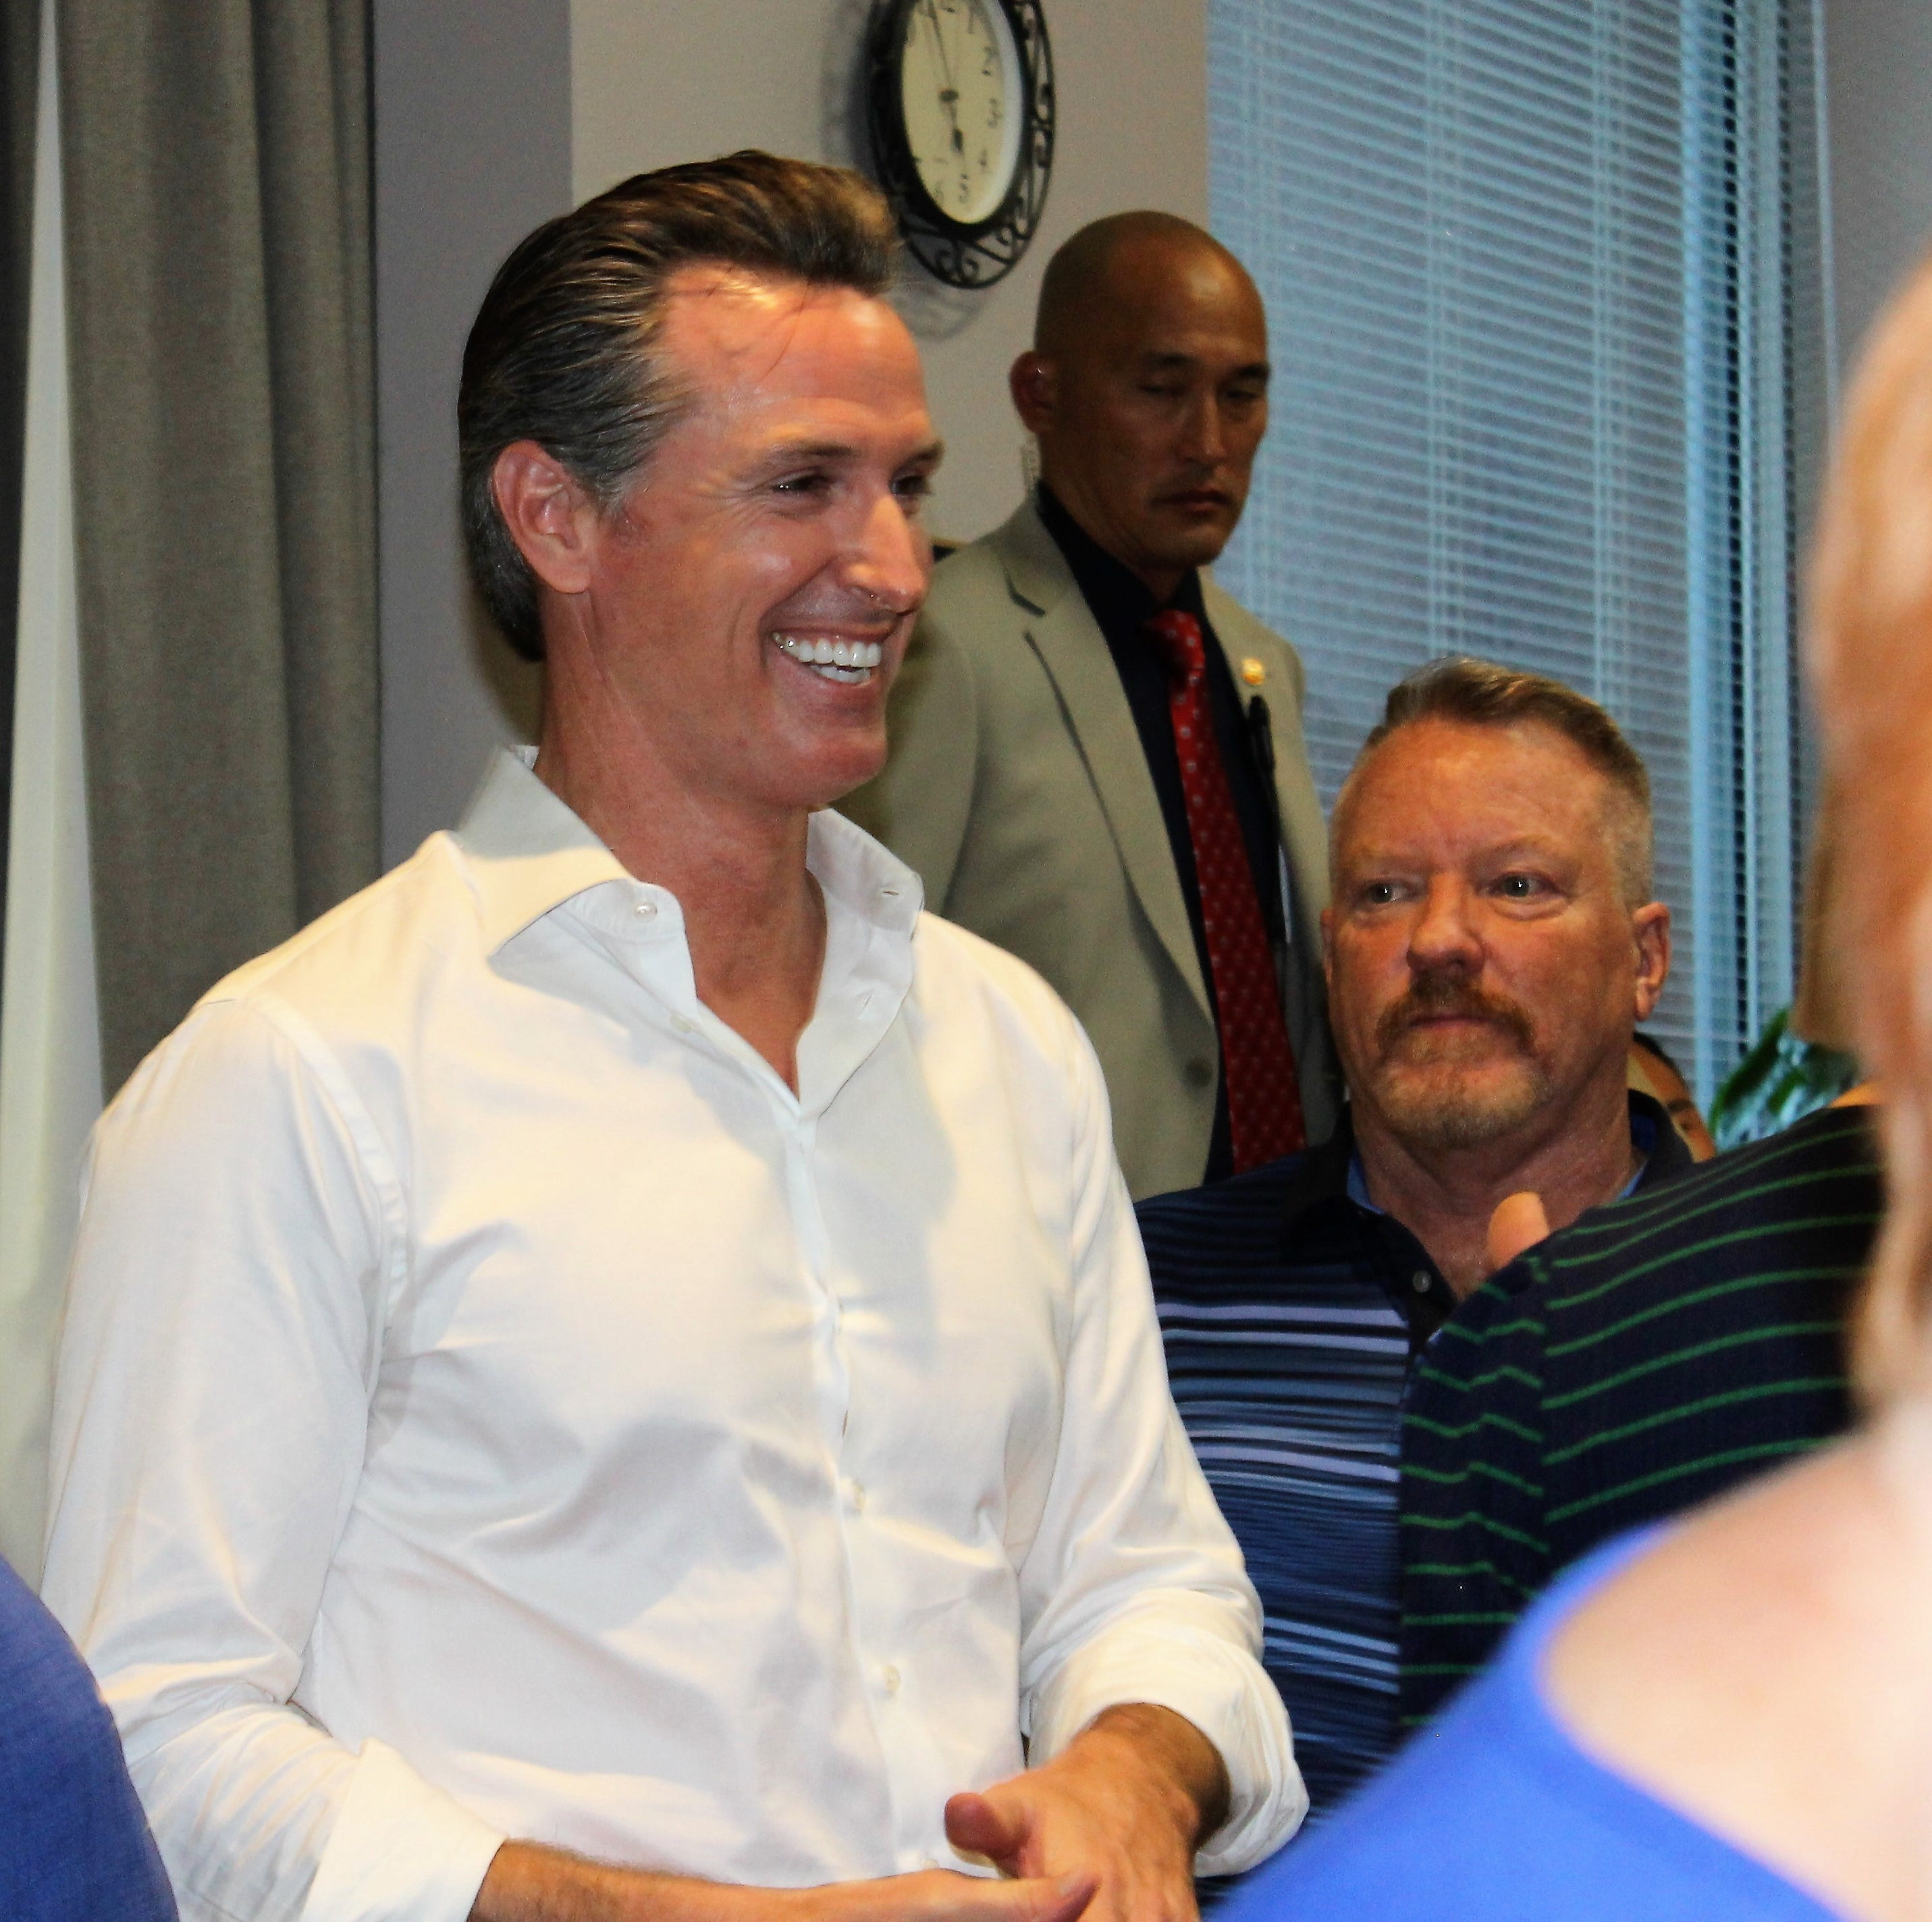 Gov. Gavin Newsom takes a big stand on the death penalty. Will it cost him?